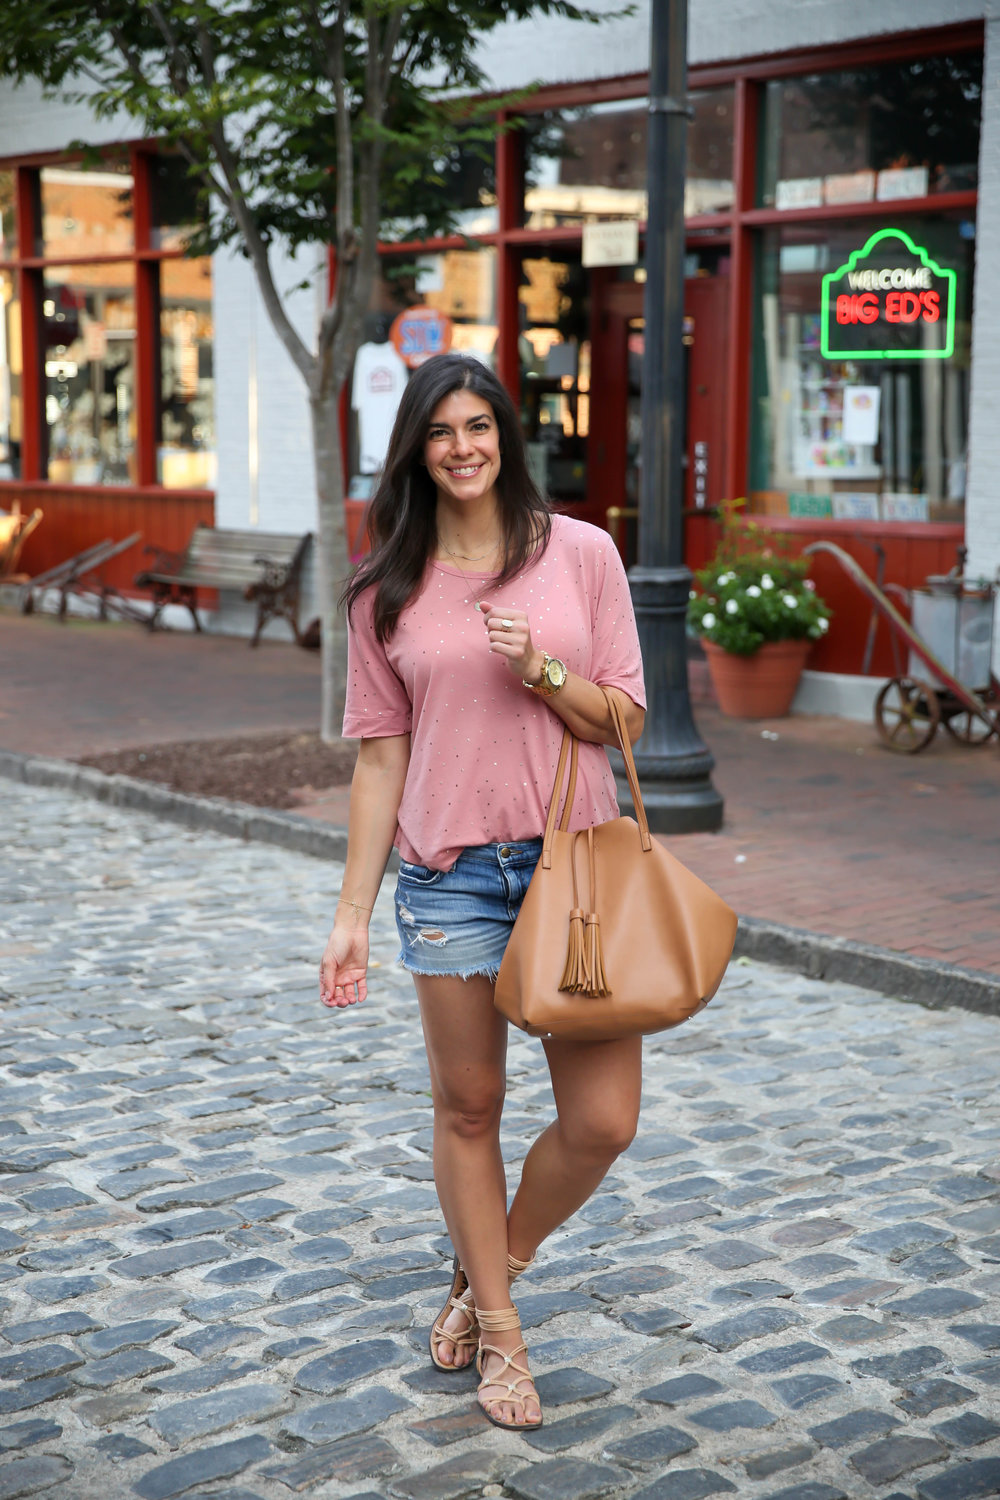 casual-chic-summer-style-lauren-schwaiger-blog.jpg